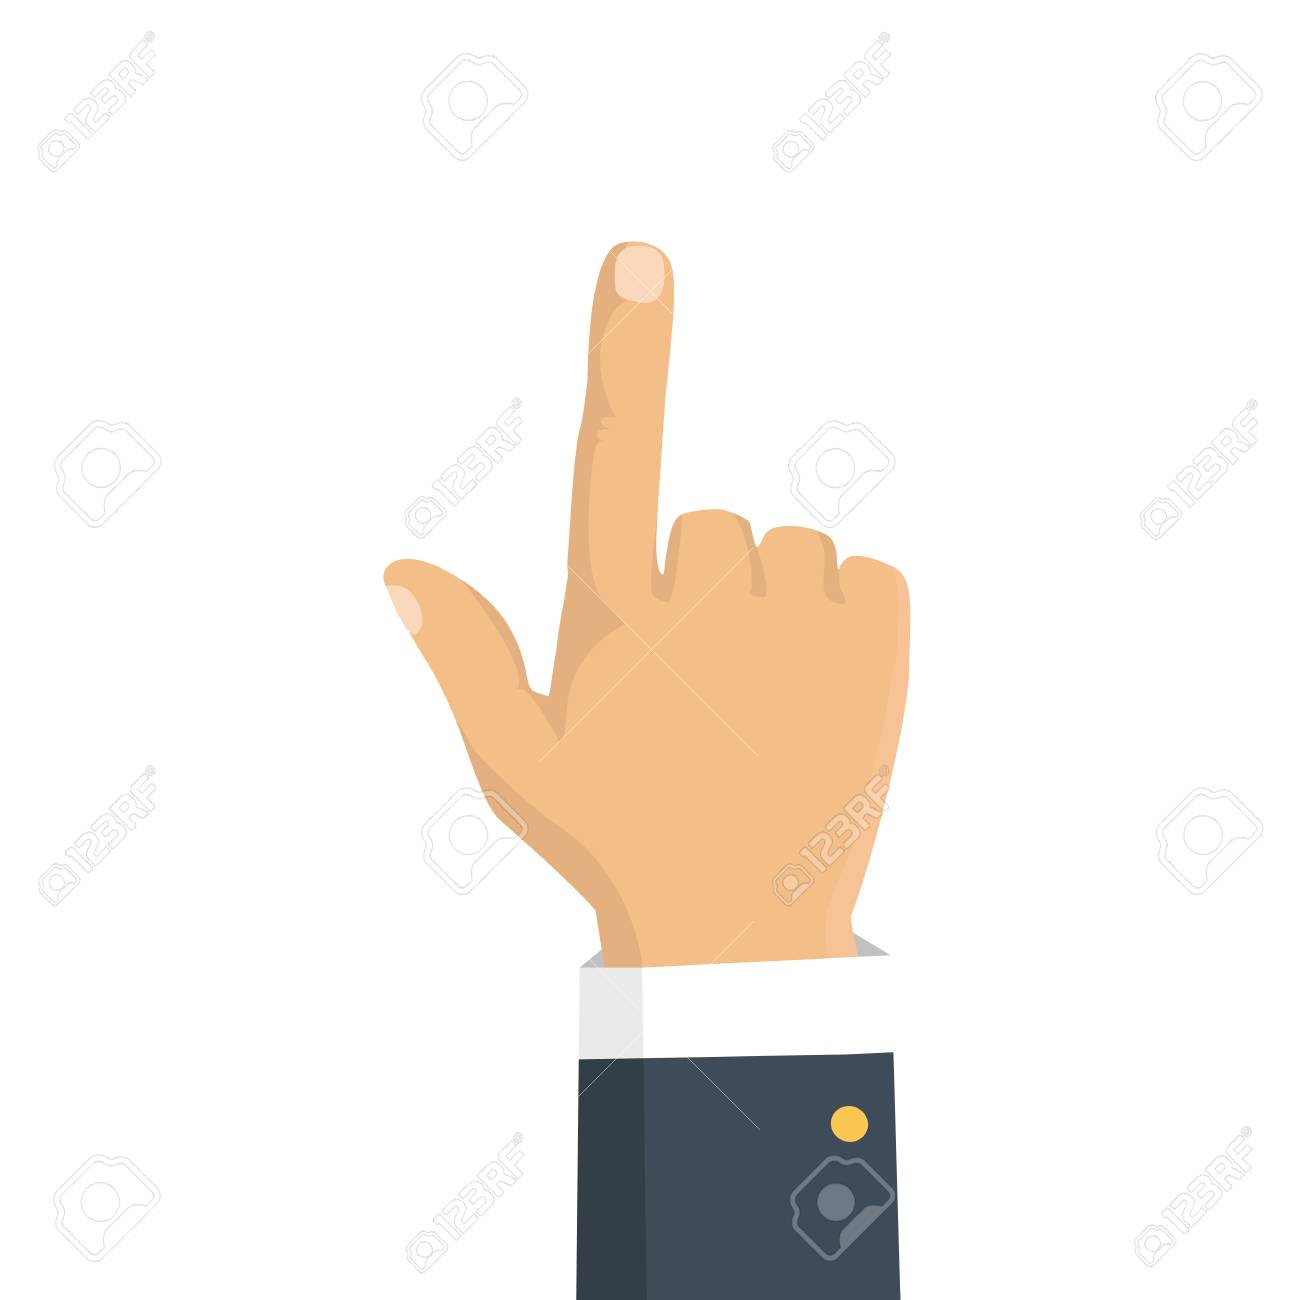 Vector isolated illustration. Hand with pointing finger. - 77744331